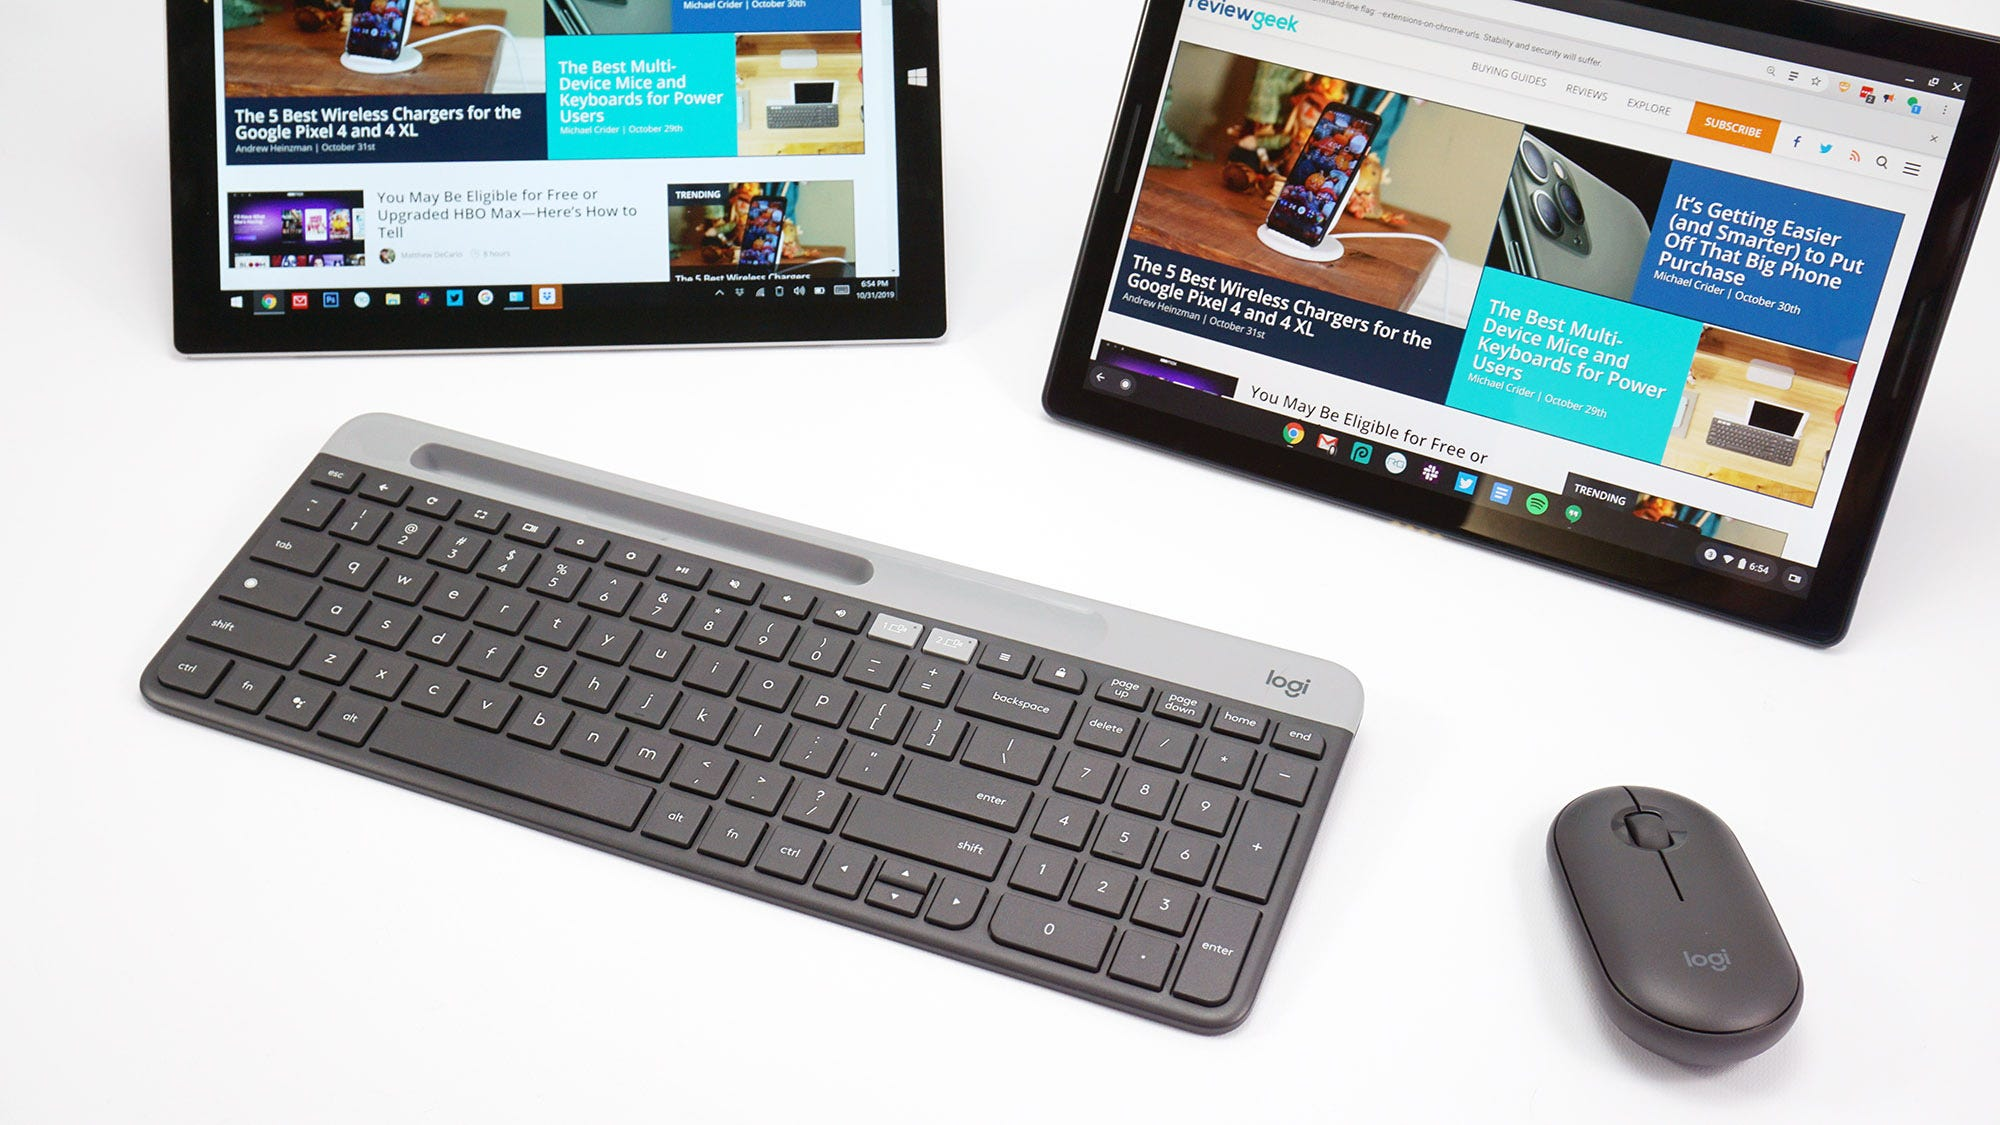 The Logitech K580 keyboard and a mouse in front of two tablets.